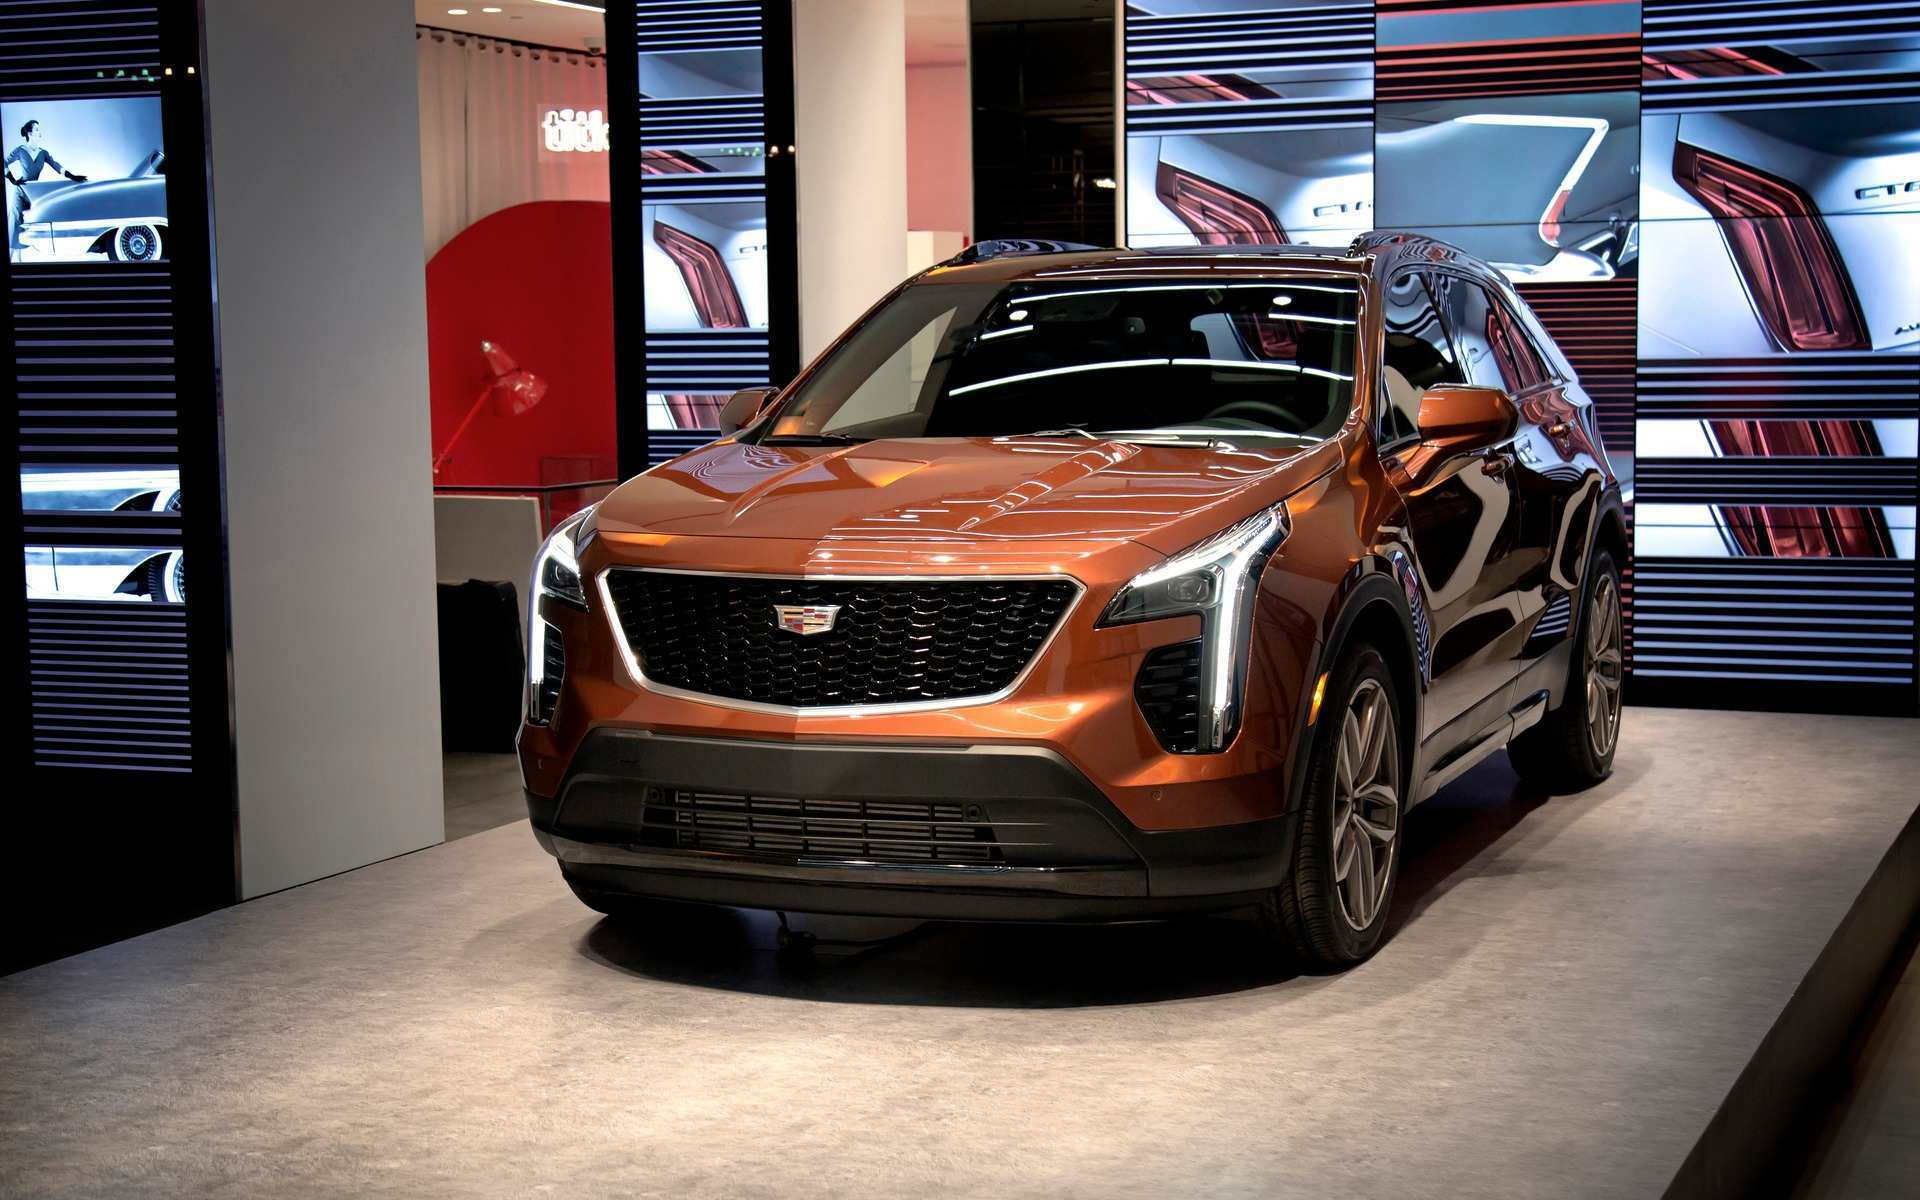 68 Concept of New Cadillac For 2019 New Concept Price and Review with New Cadillac For 2019 New Concept